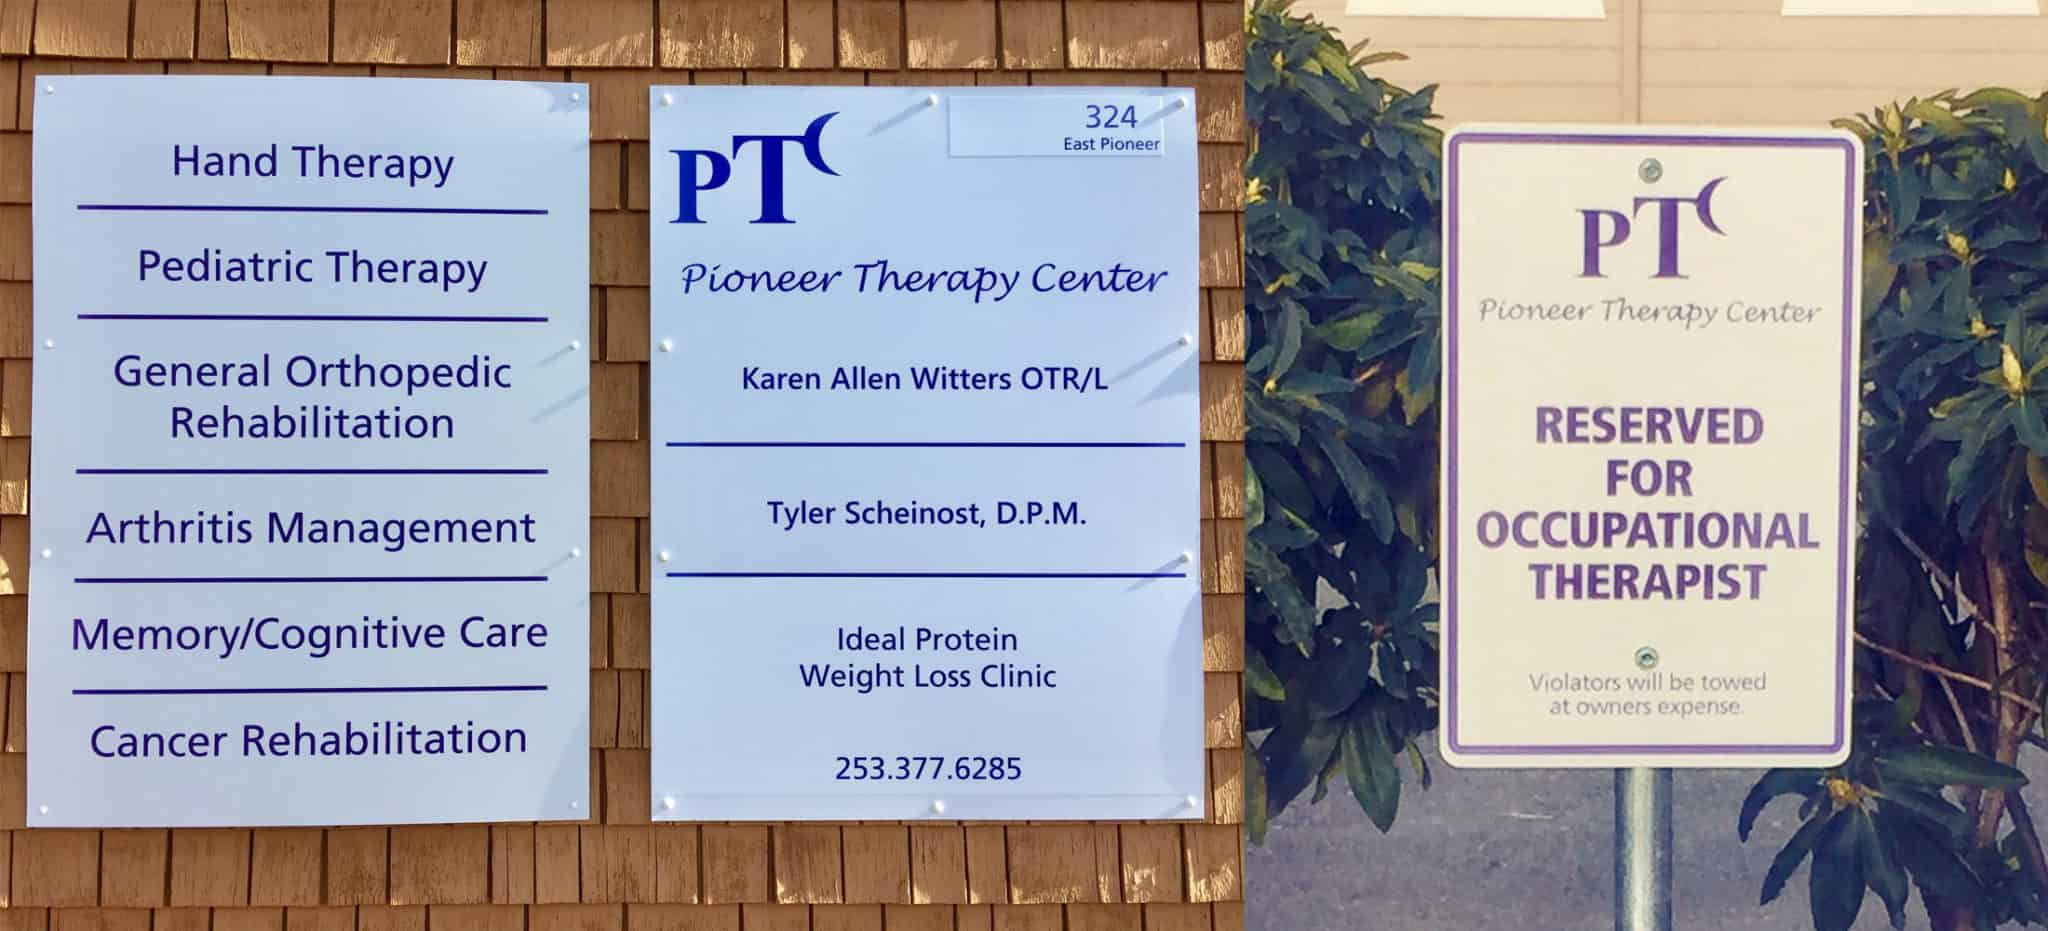 Contact Pioneer Therapy Center, Puyallup, WA